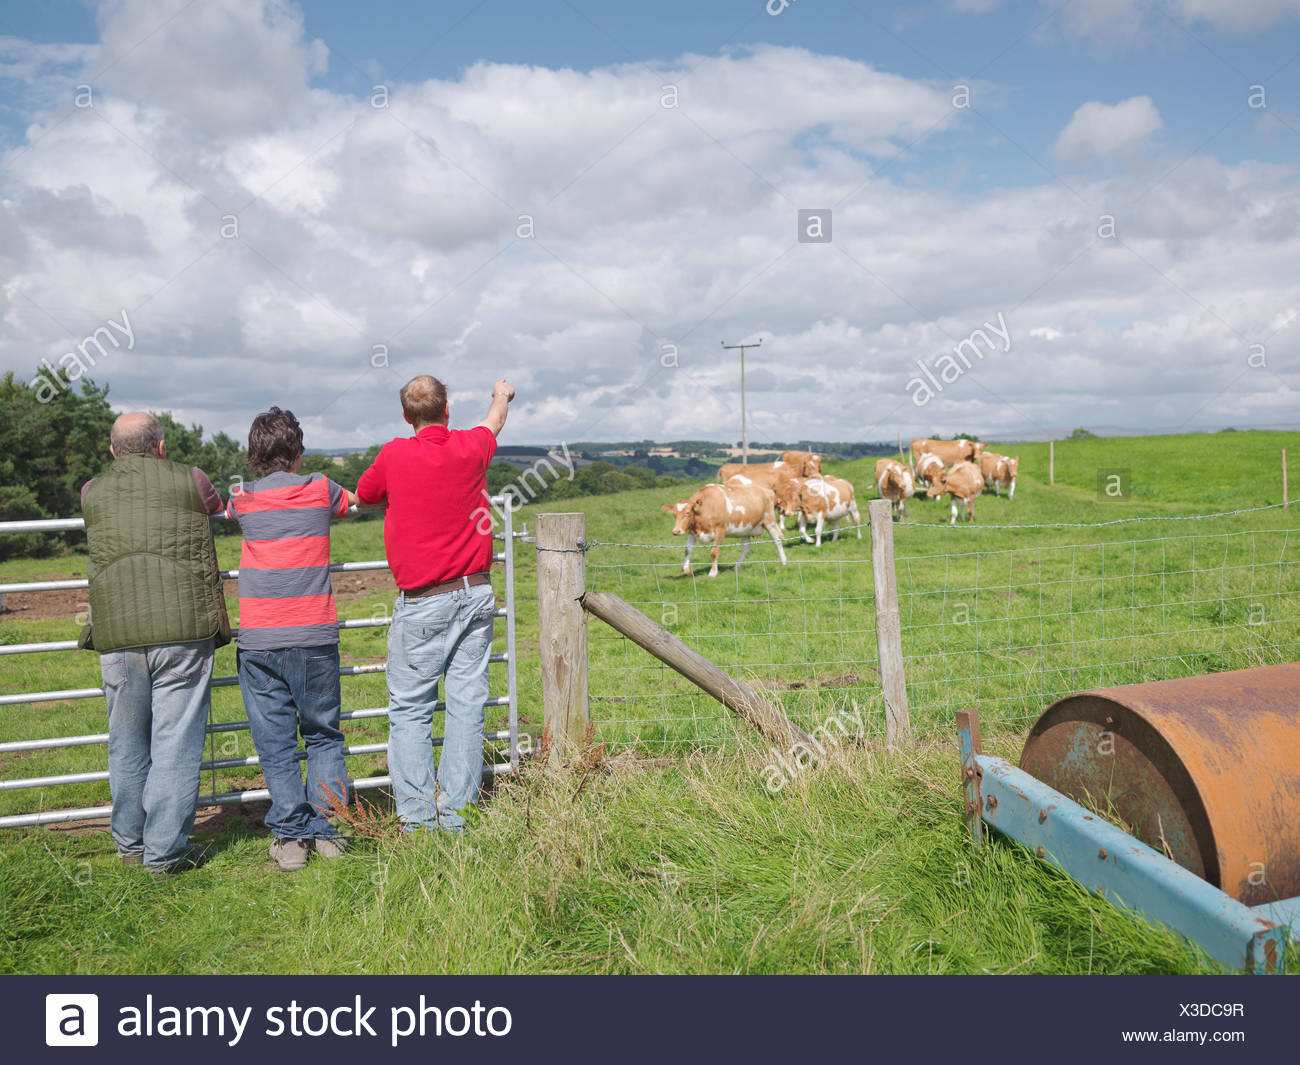 Farmer and sons with Guernsey cows - Stock Image